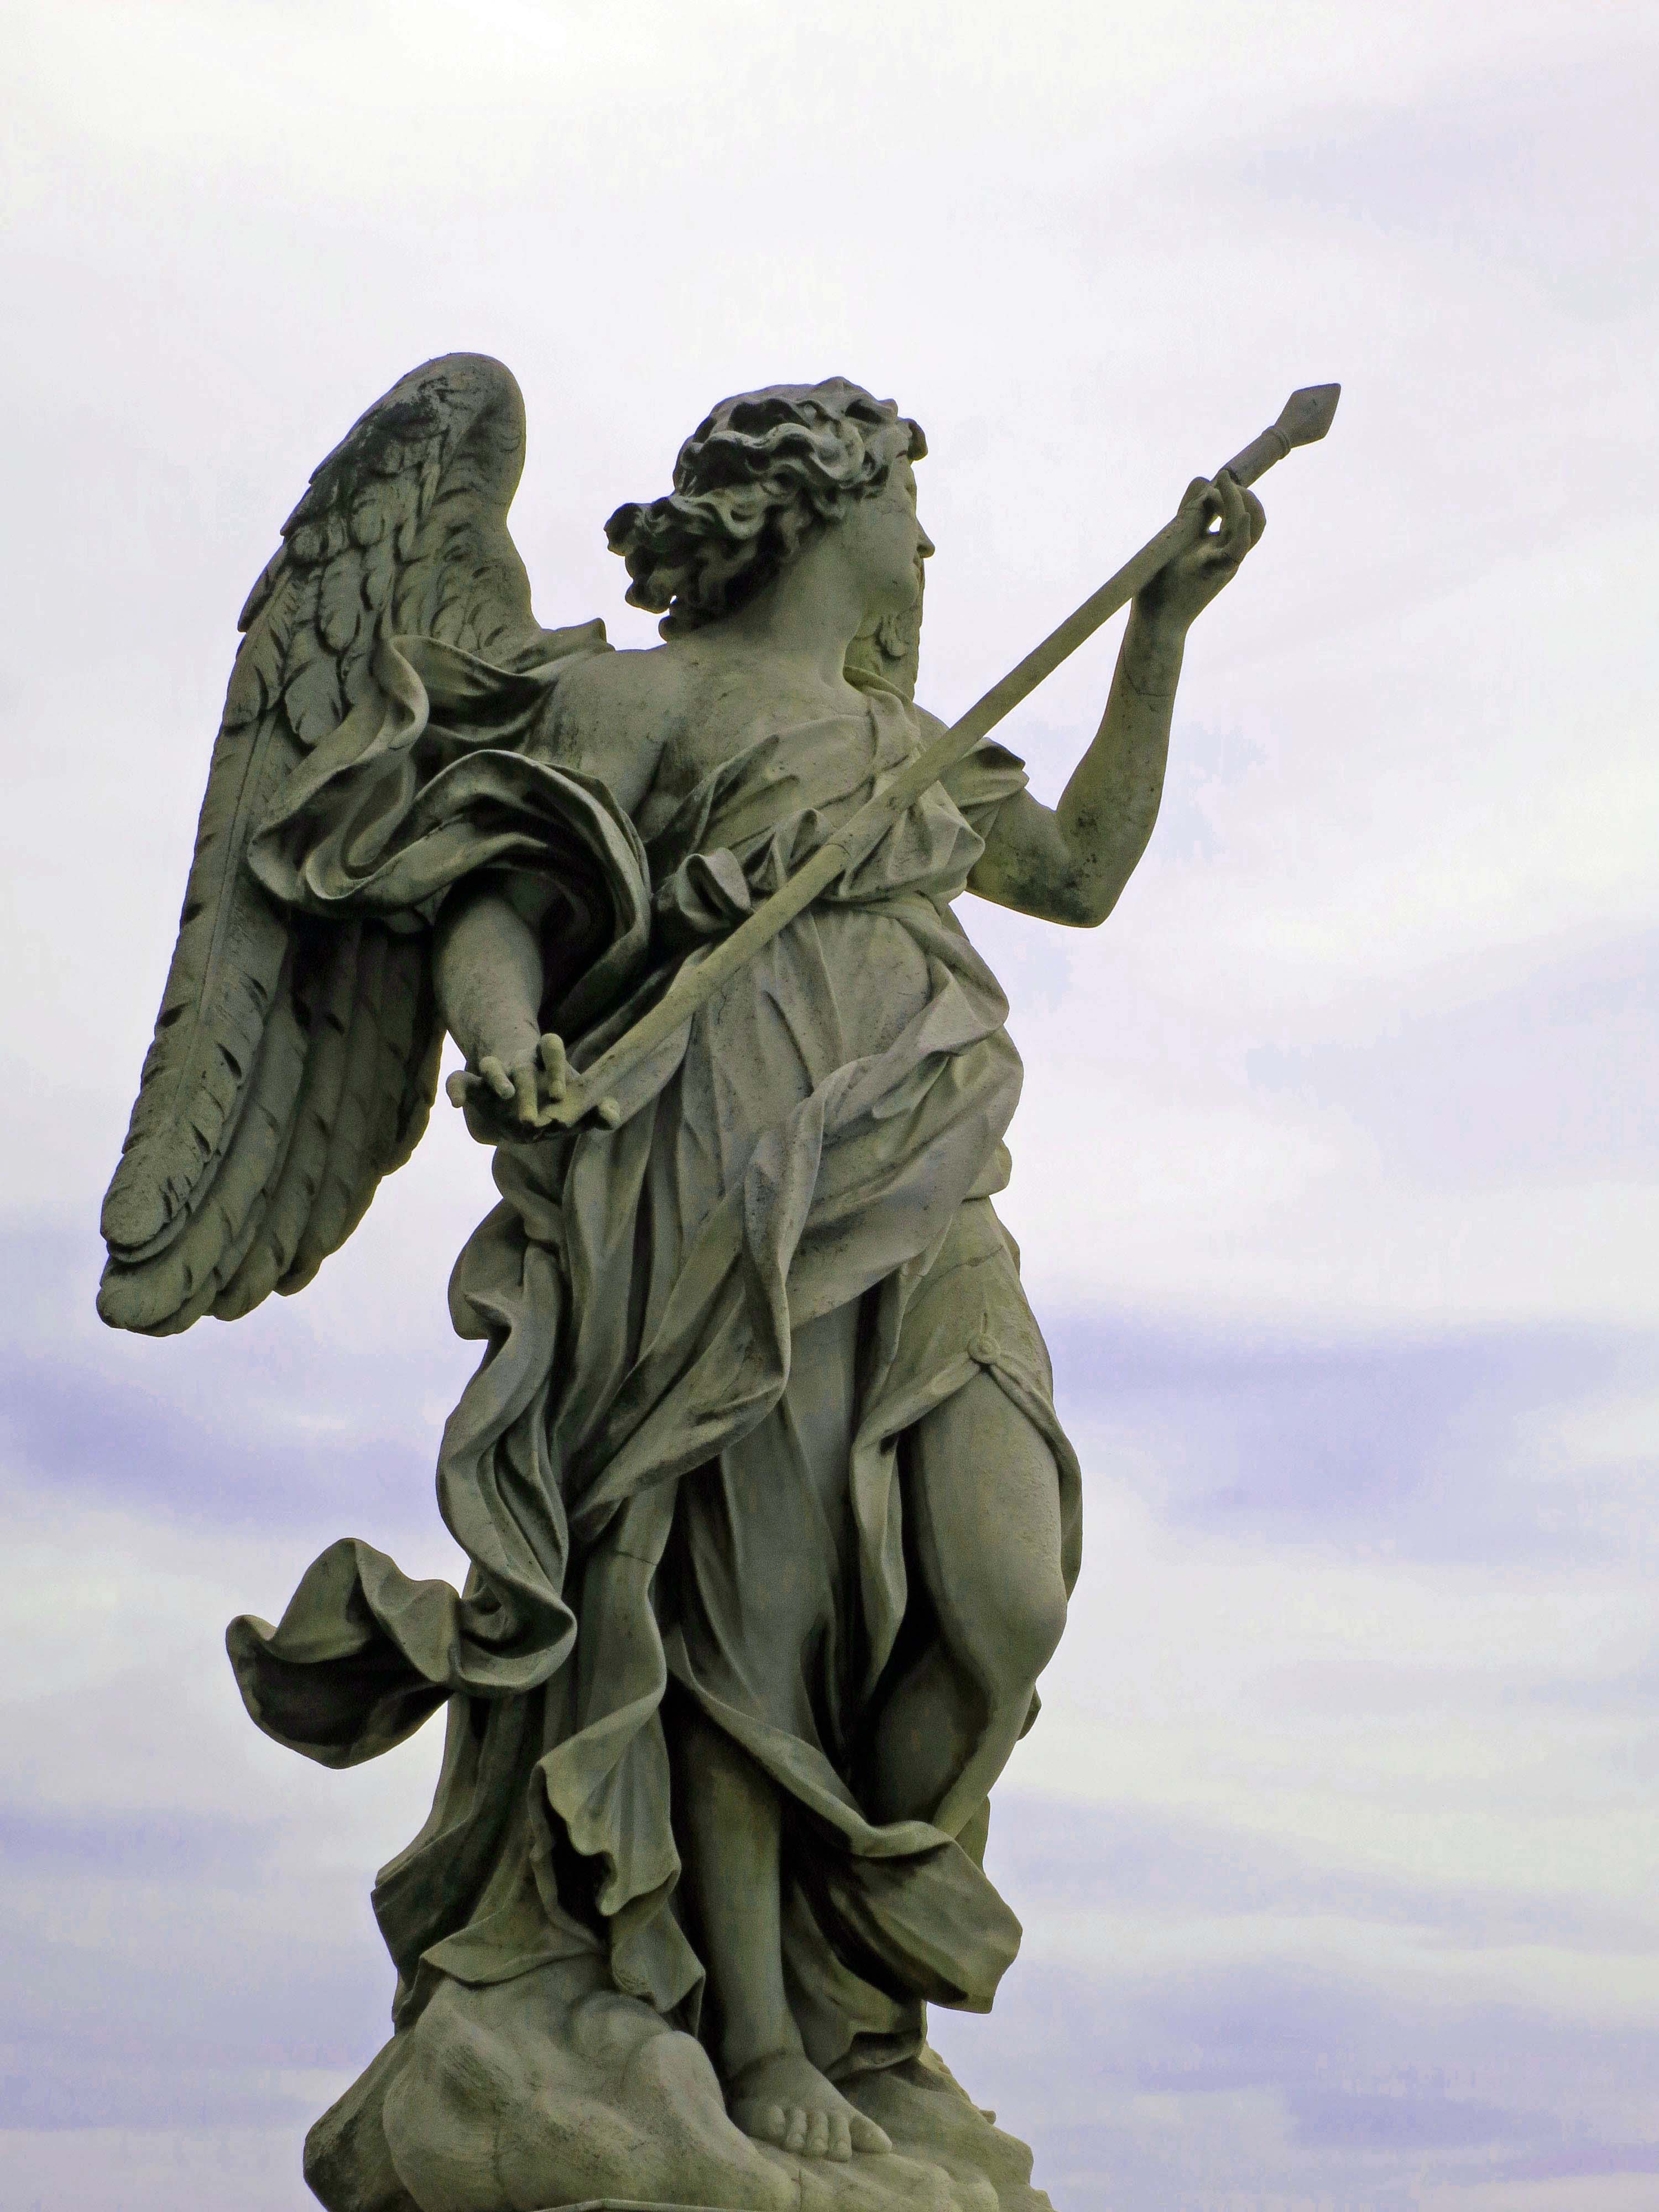 The Pont St. Angelo received its name during the Renaissance when Bernini oversaw a project to line it with angels representing Christ's crucifixion.